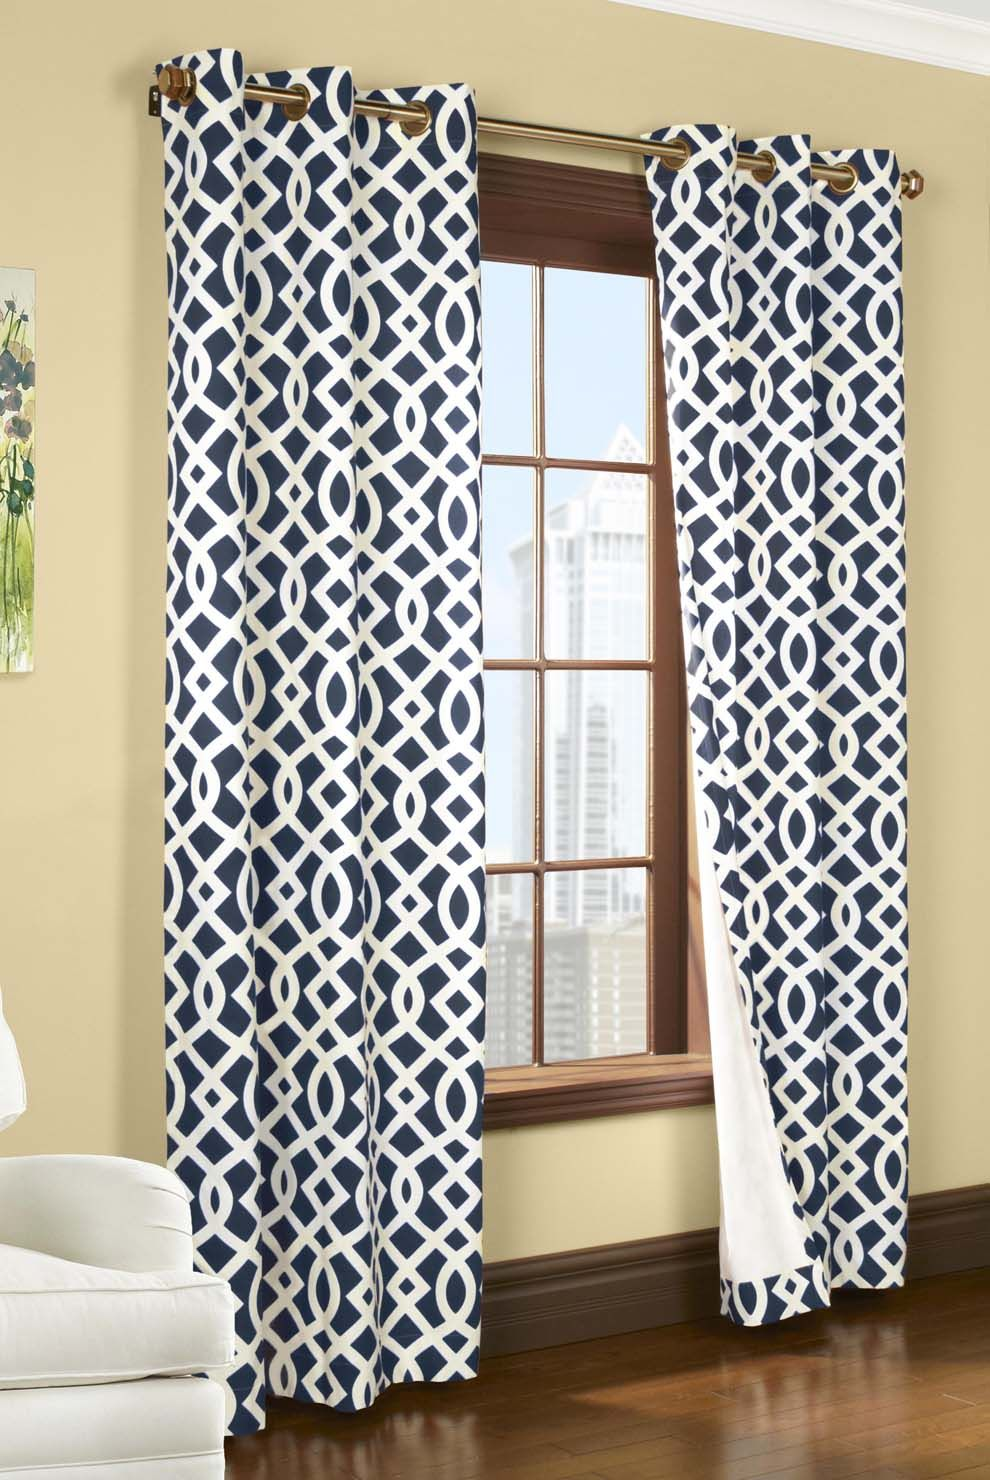 Drawing Of Adorn Your Interior With White Patterned Curtains